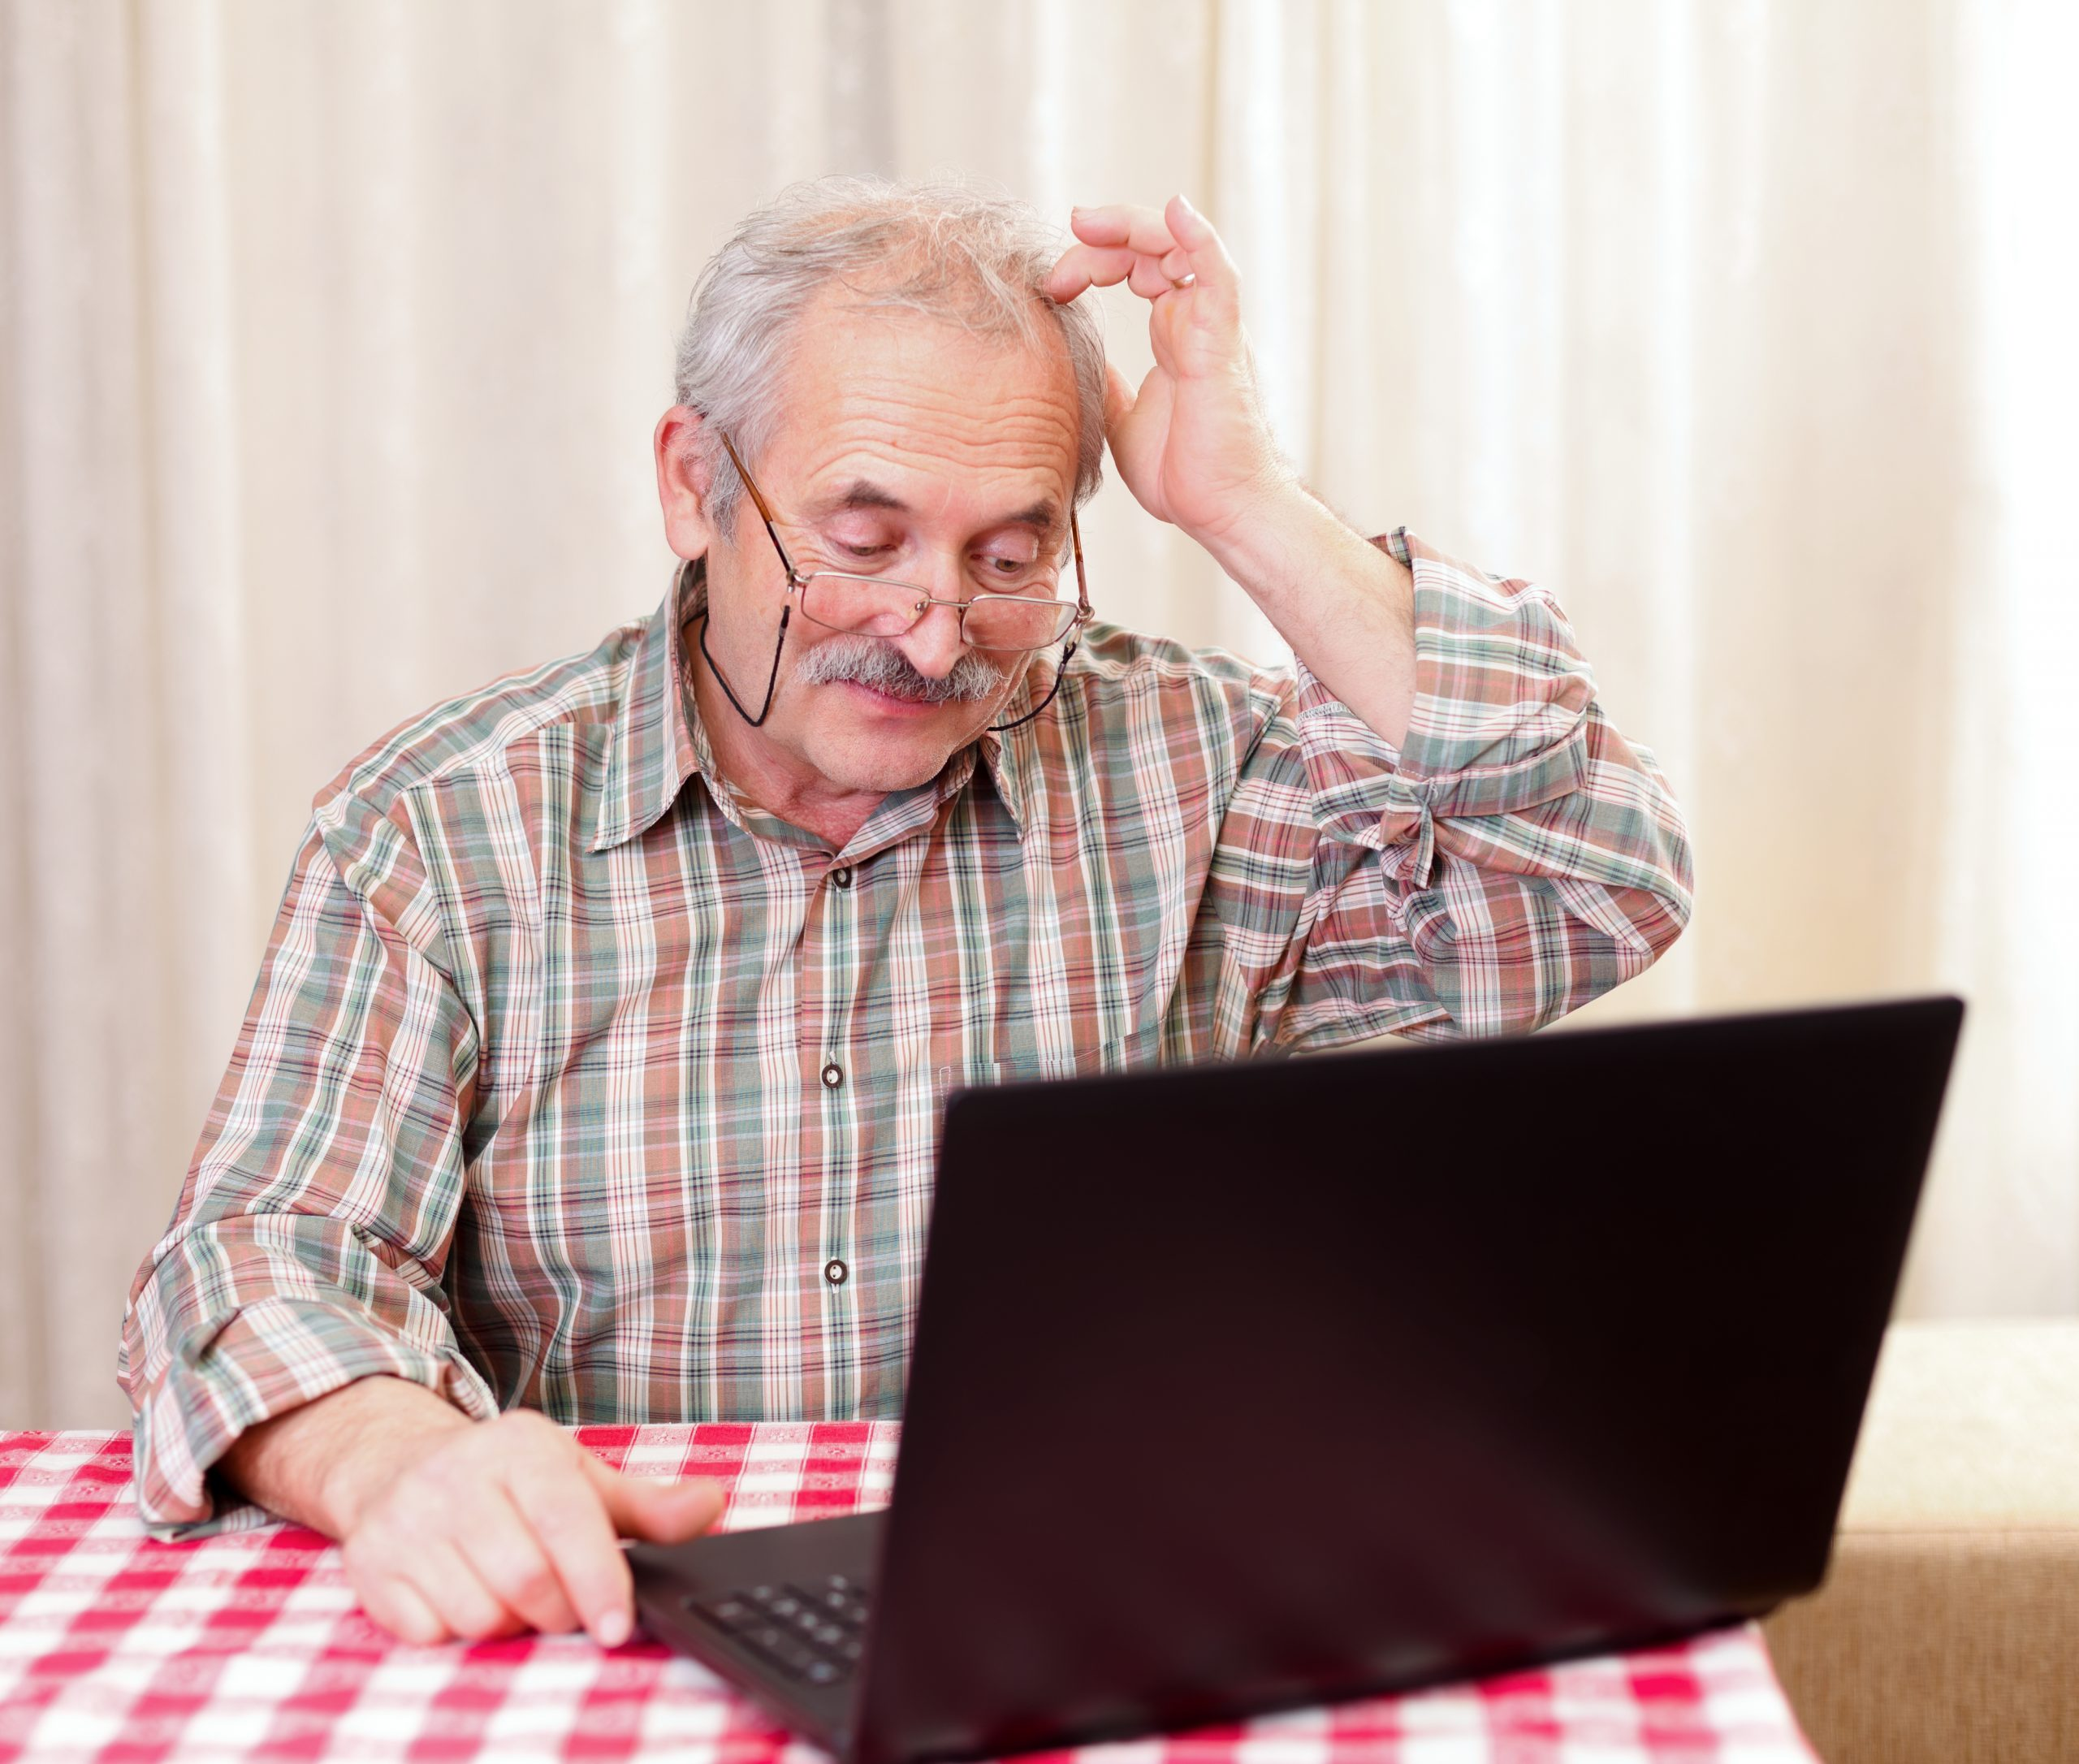 Elderly man using the laptop at home.